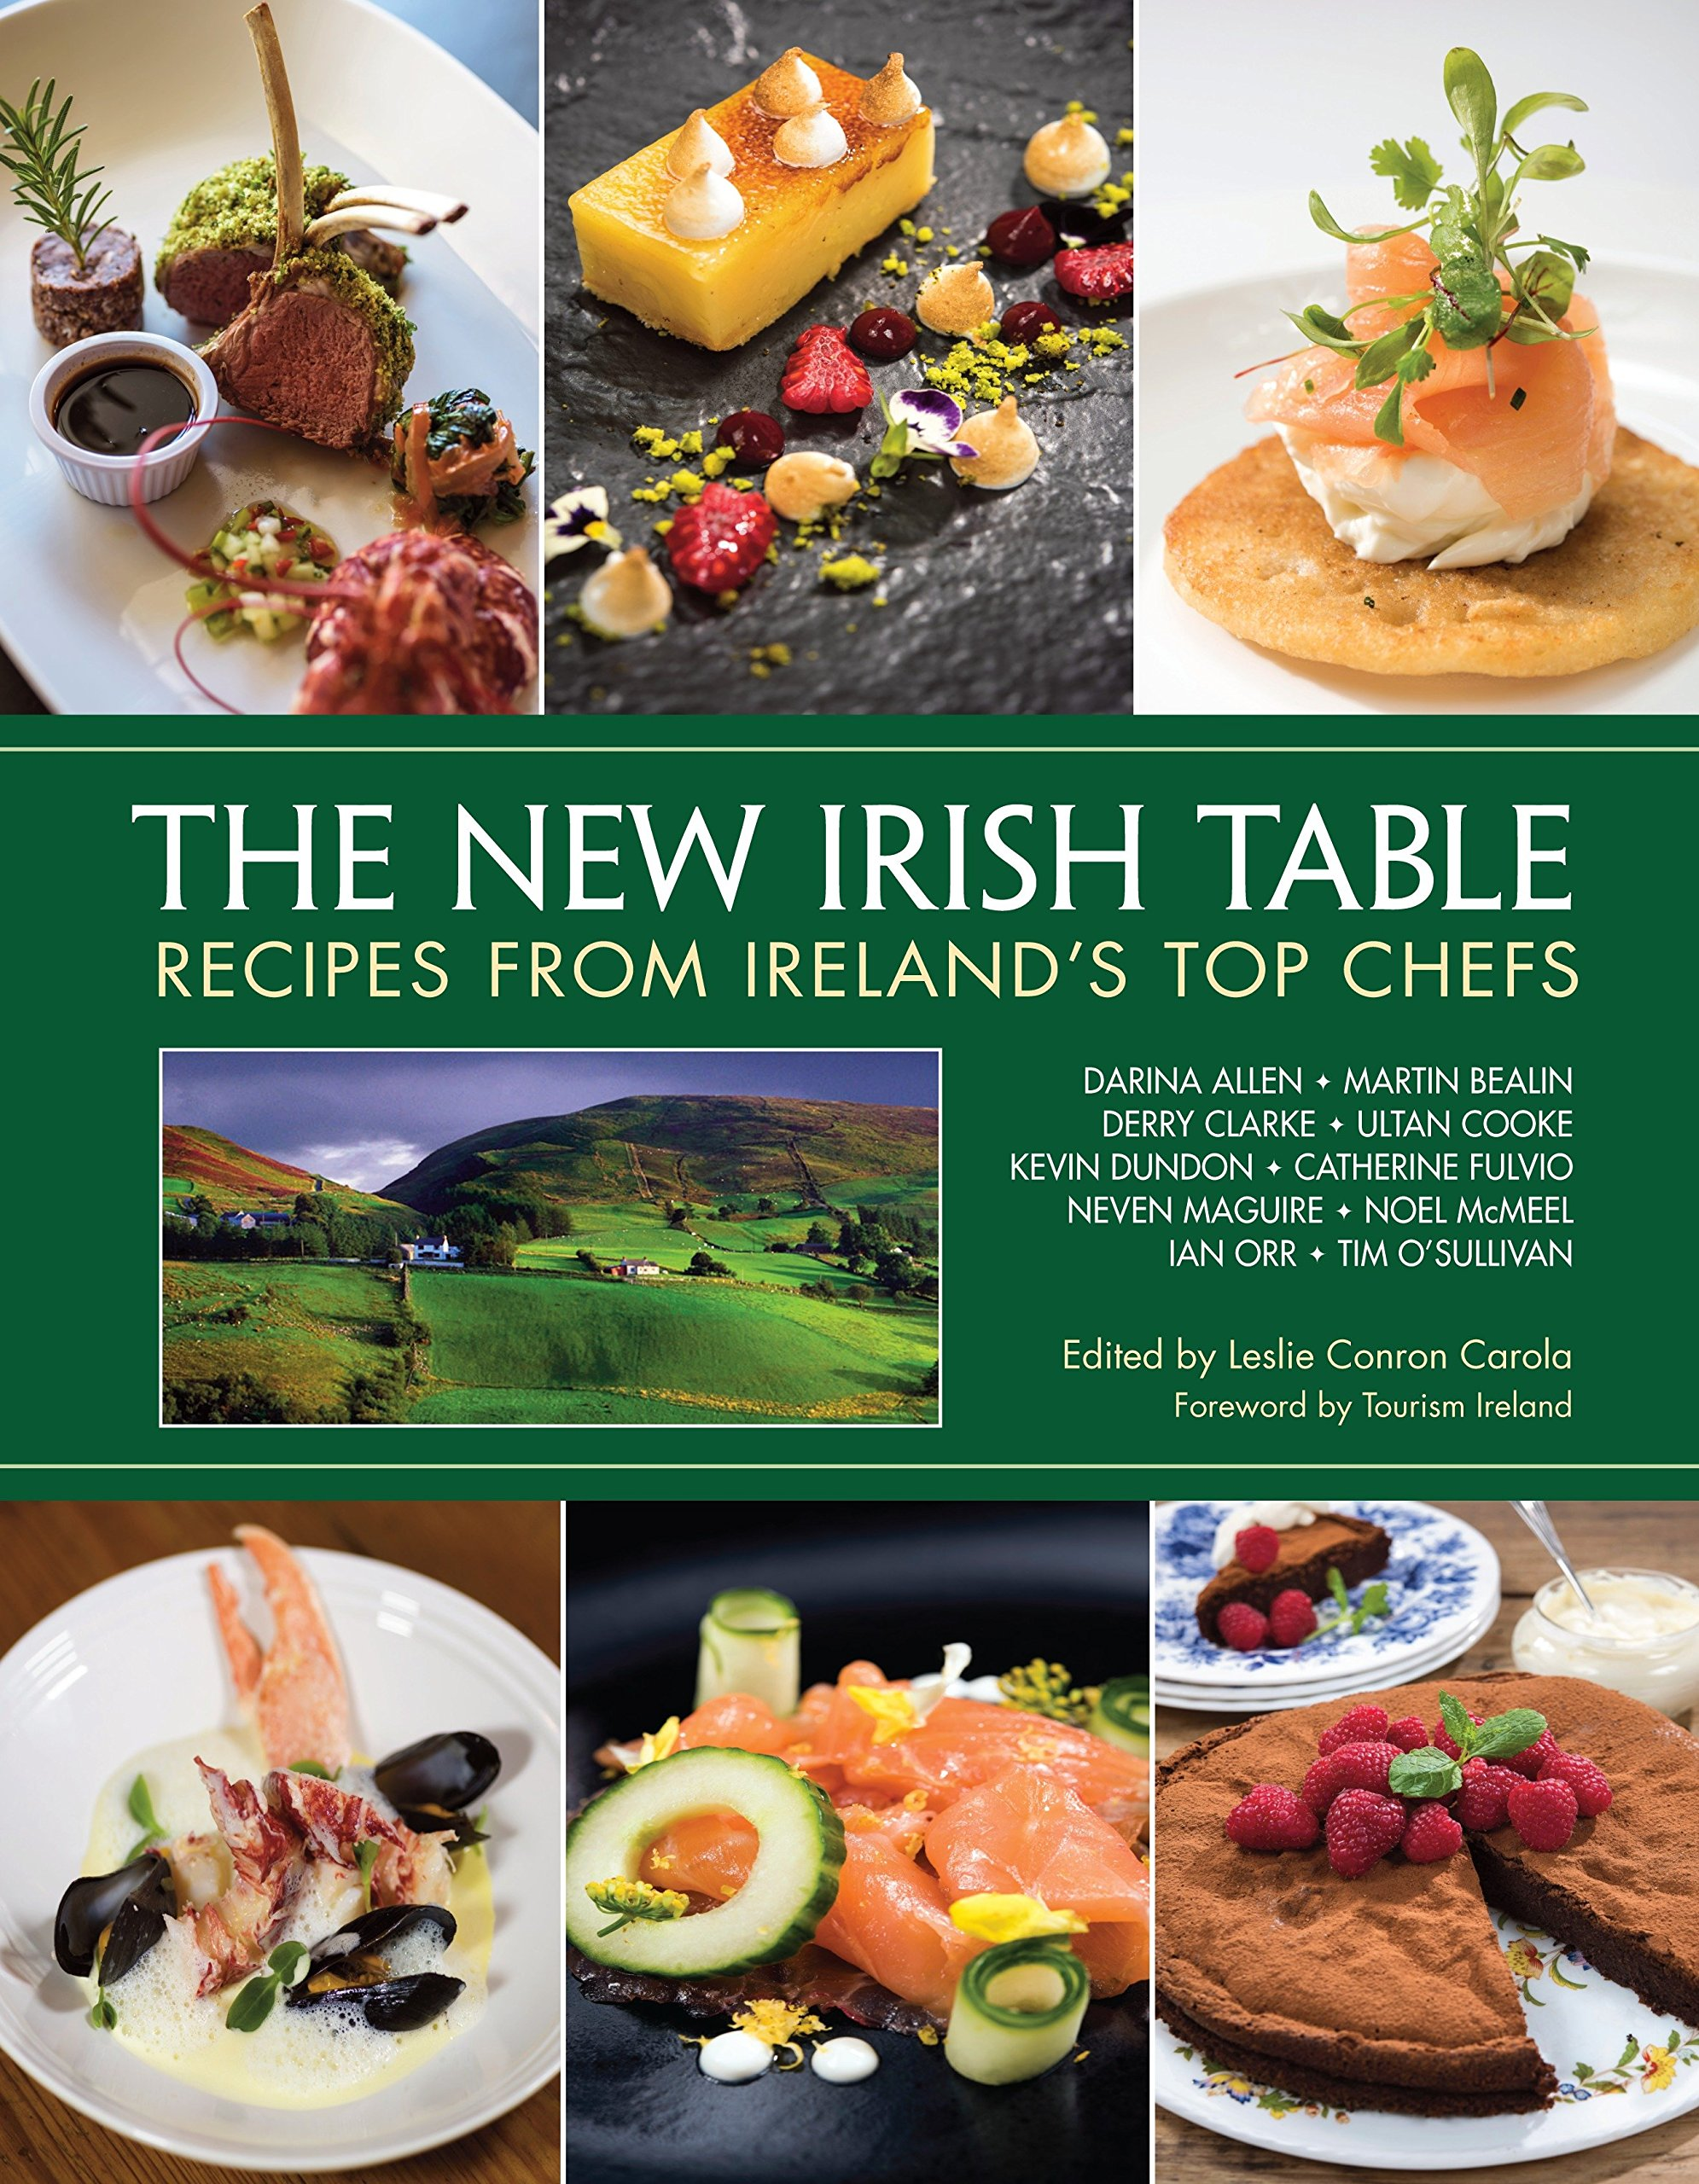 The New Irish Table: Recipes from Ireland's Top Chefs